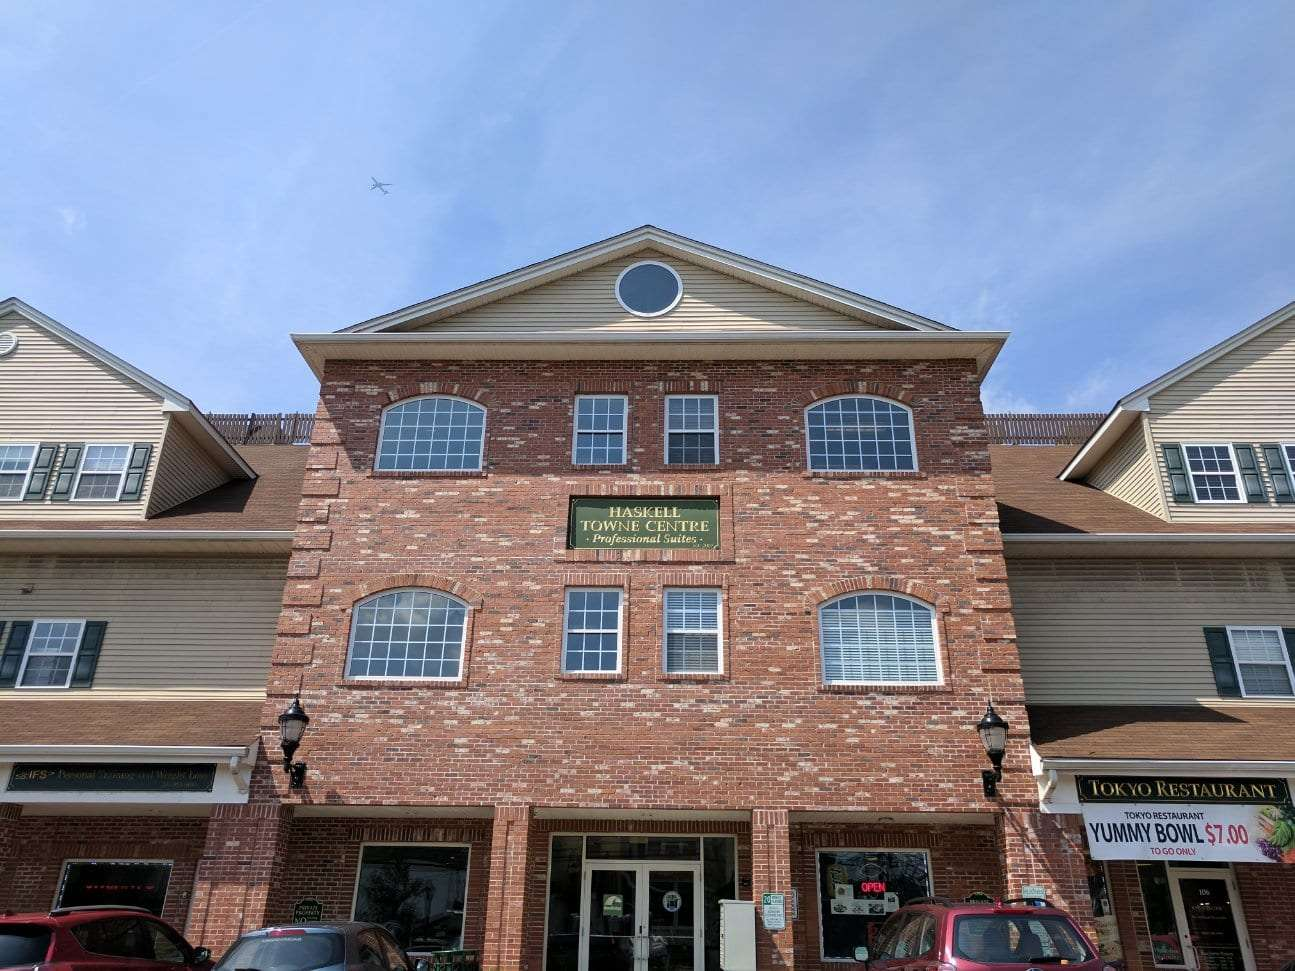 An image of the exterior of our physical therapy clinic in Haskell, New Jersey.